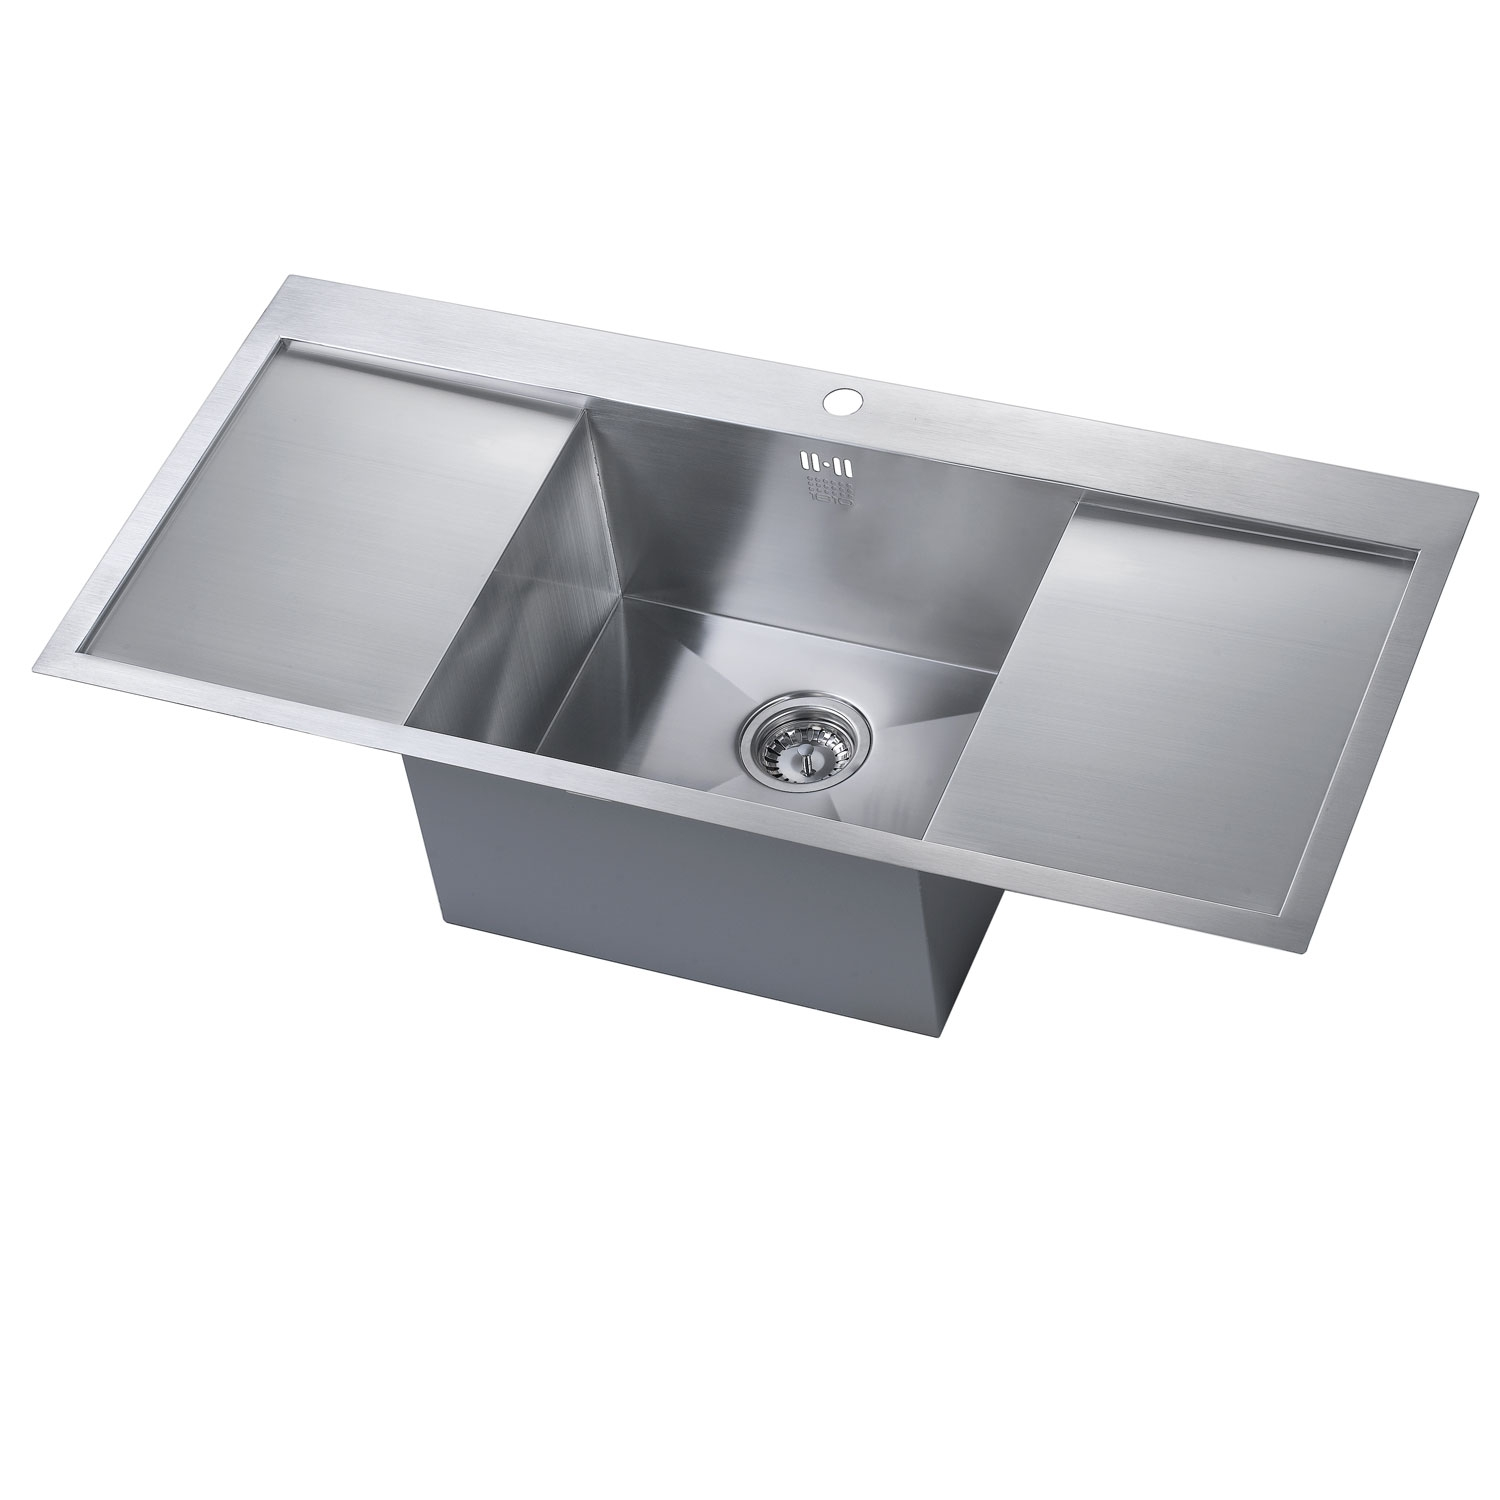 The 1810 Company Zenuno 45 I-F Deep 1.0 Bowl Kitchen Sink - Stainless Steel-0